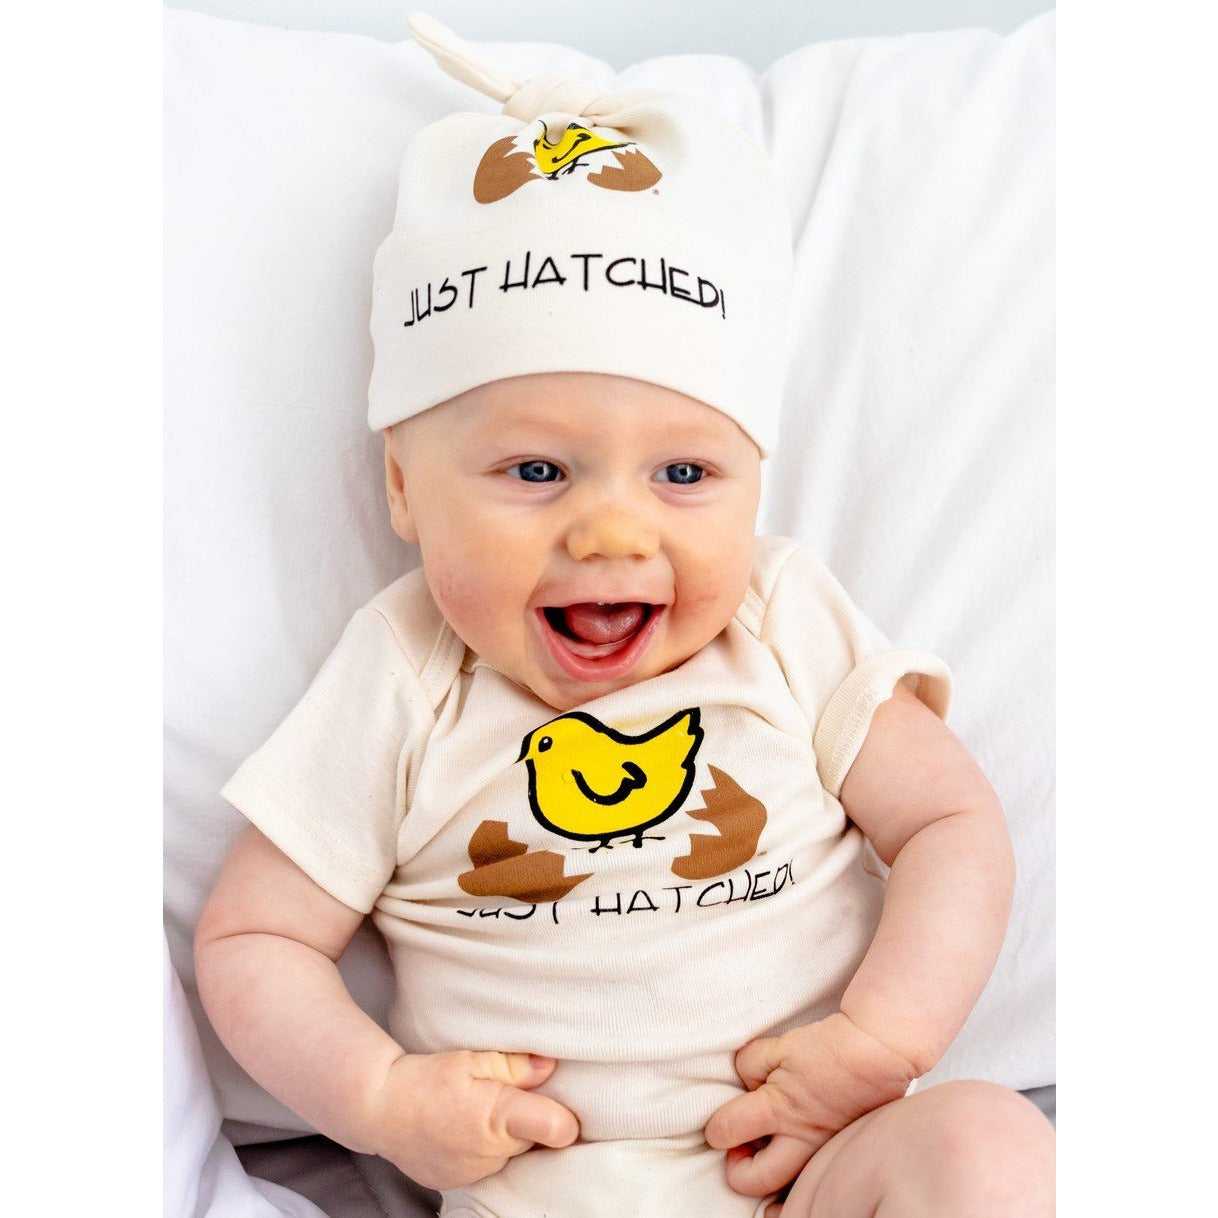 Organic cotton baby gift set - Hatched